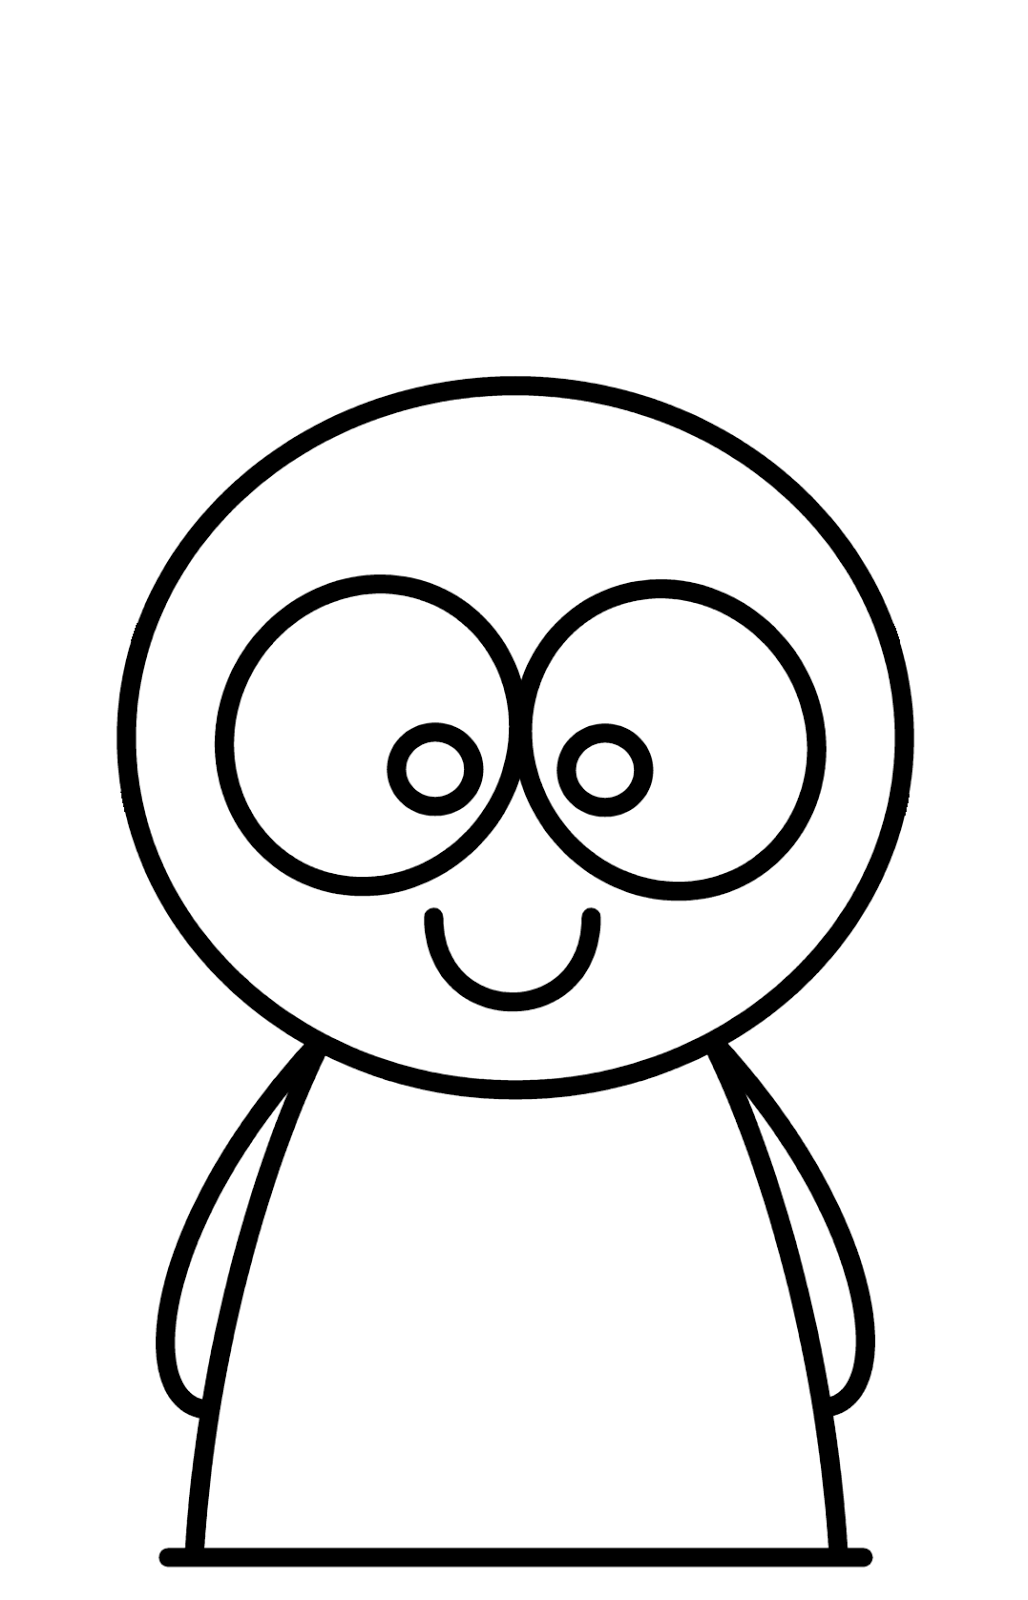 cartoon characters to draw easy easy drawing characters at getdrawings free download characters to cartoon easy draw